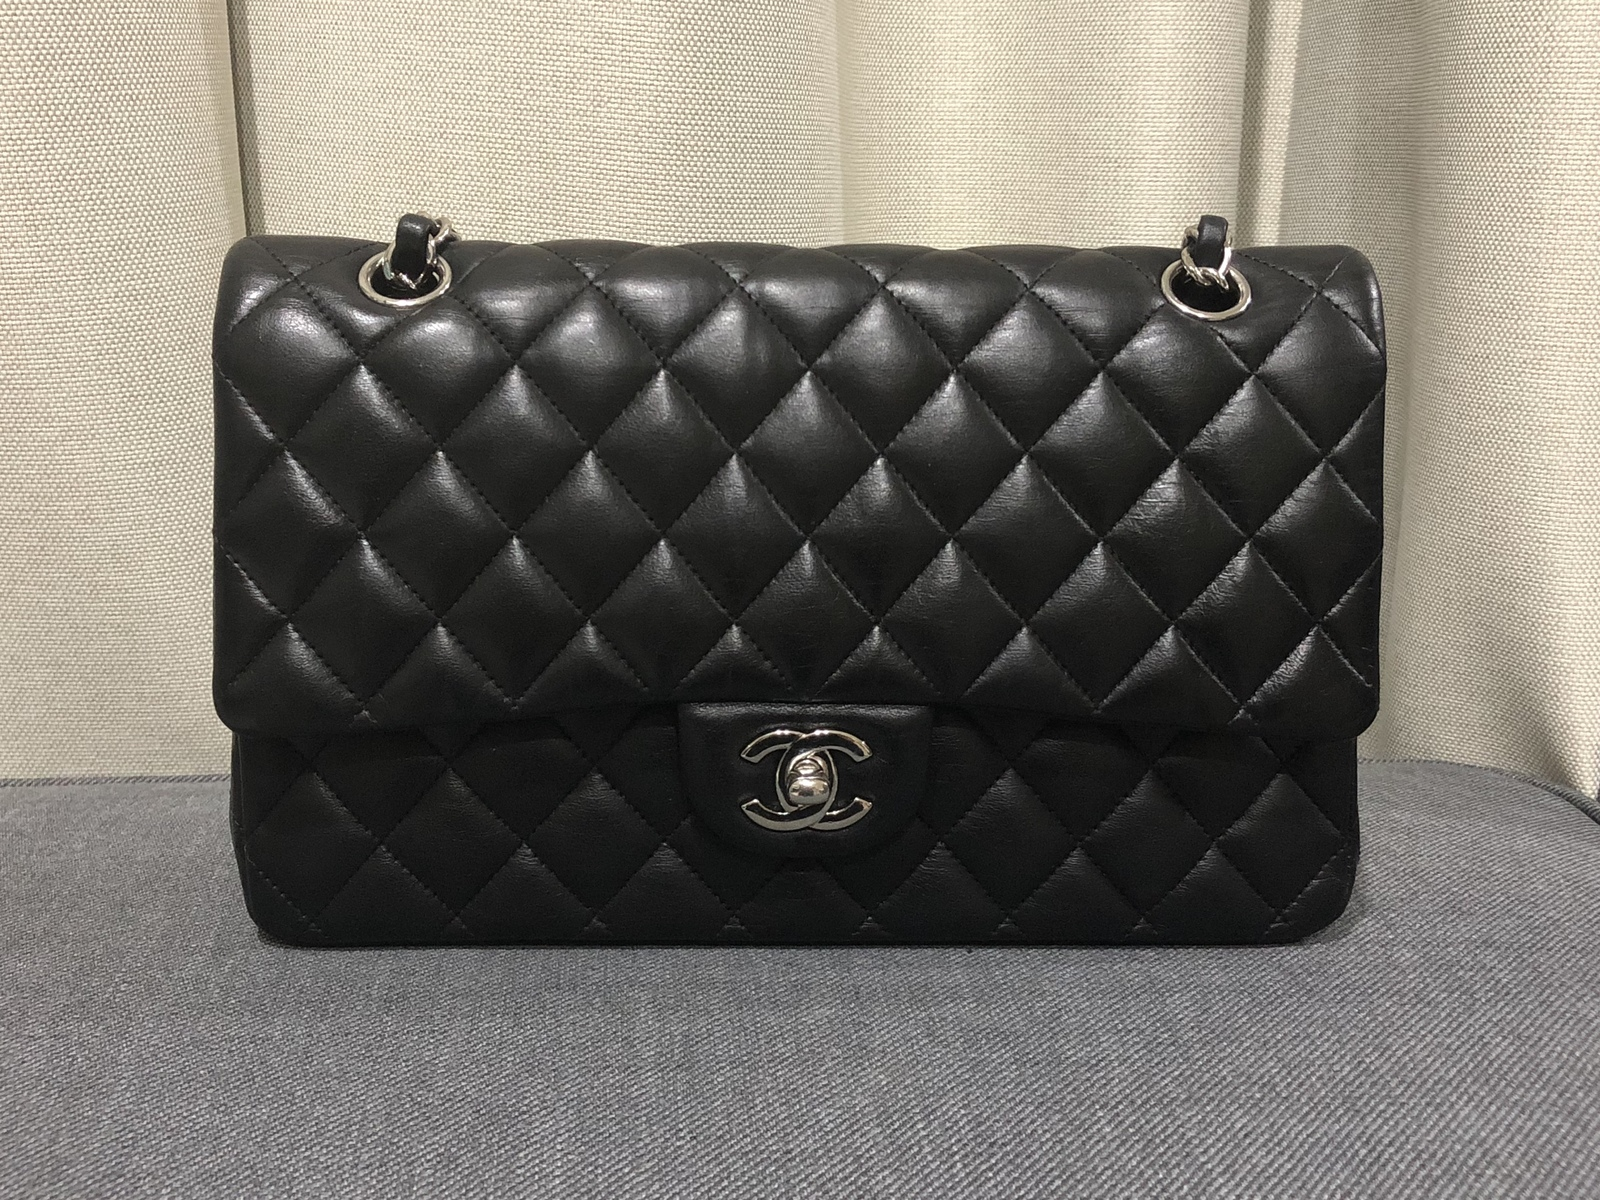 100% Authentic Chanel BLACK QUILTED LAMBSKIN MEDIUM CLASSIC DOUBLE FLAP BAG SHW